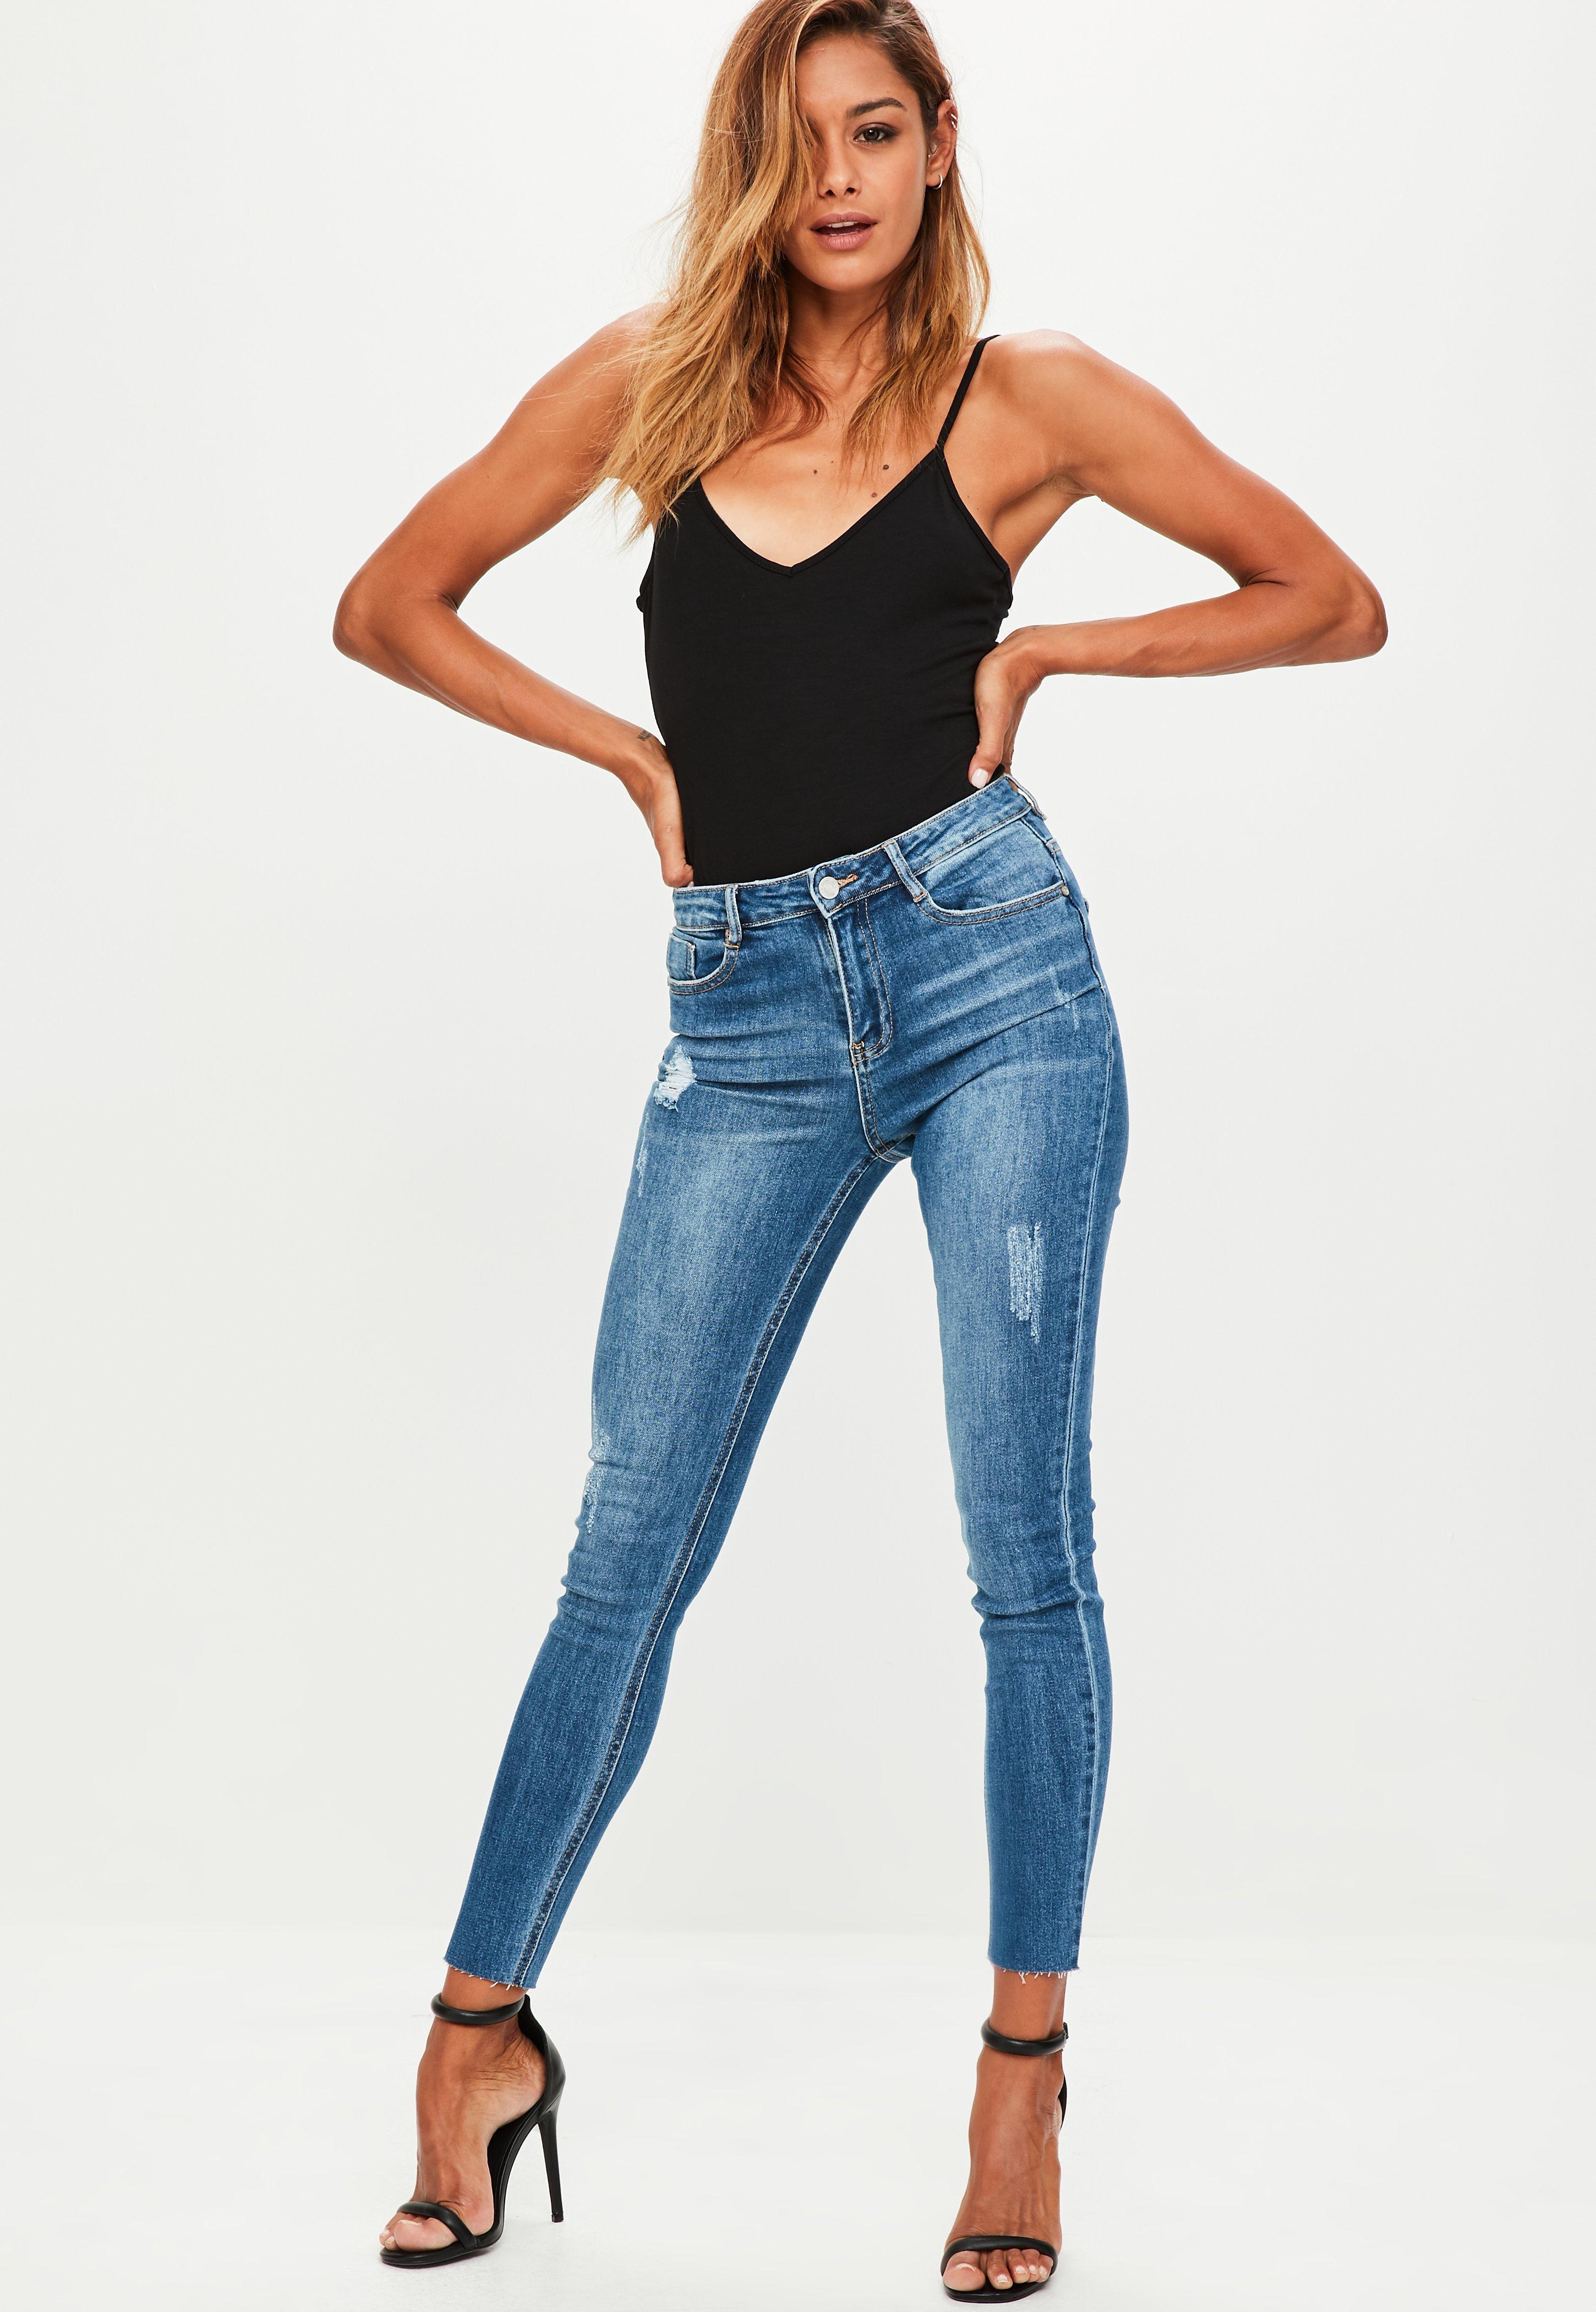 Little Black Dress Little White Dress Everyday Dresses Sale Dresses Jeans. New Arrivals Classic High Waist Skinny Jeans - Dark. $ USD. QUICK VIEW. Super High Waist Denim Skinnies - Black. $ USD - AVAILABLE IN MORE COLORS - QUICK VIEW.